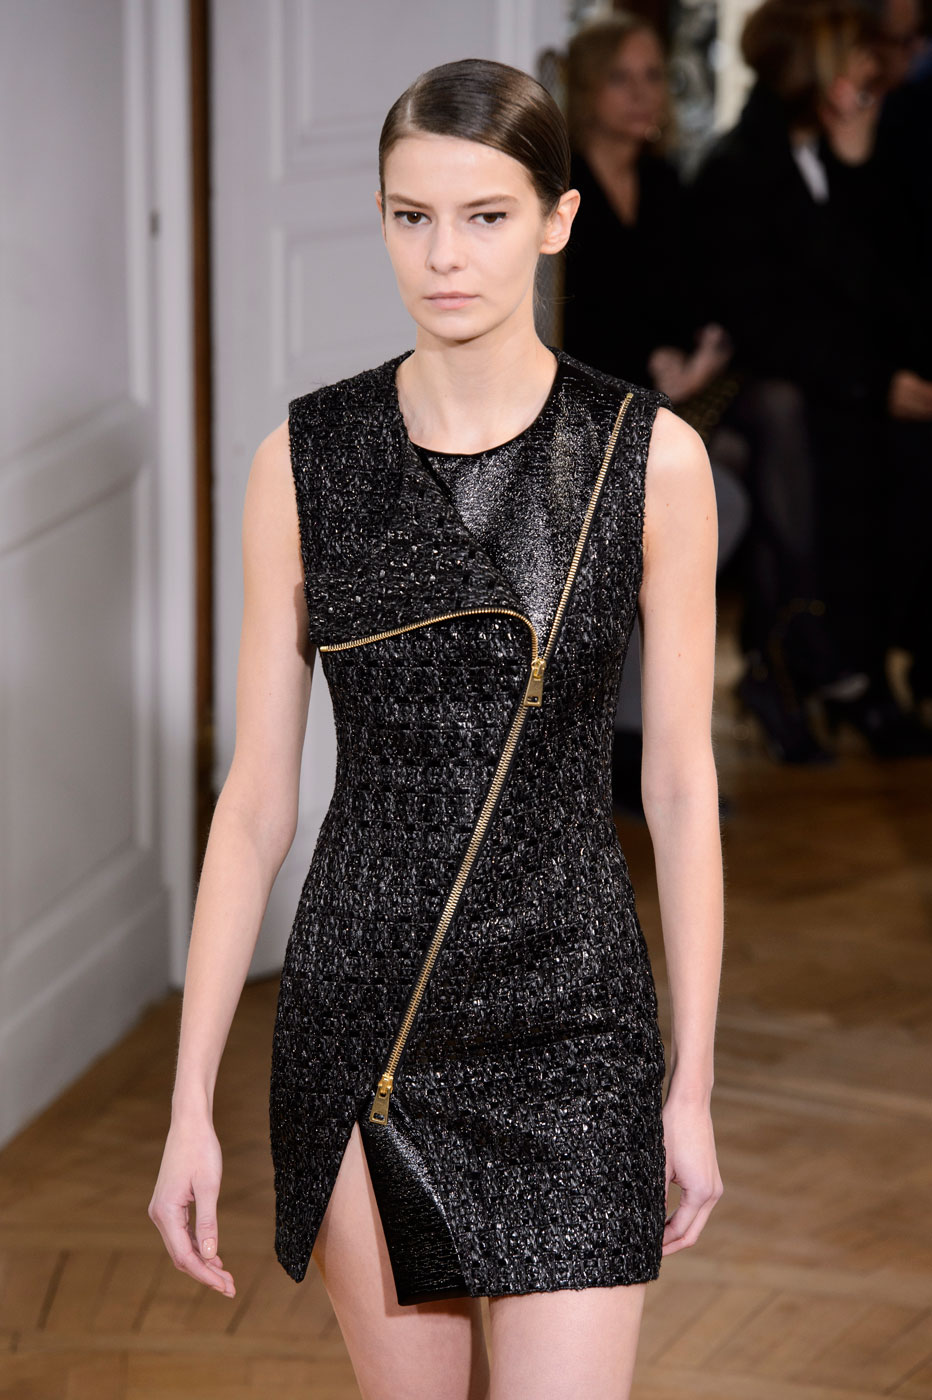 Bouchra-Jarrar-fashion-runway-show-haute-couture-paris-spring-summer-2015-the-impression-04